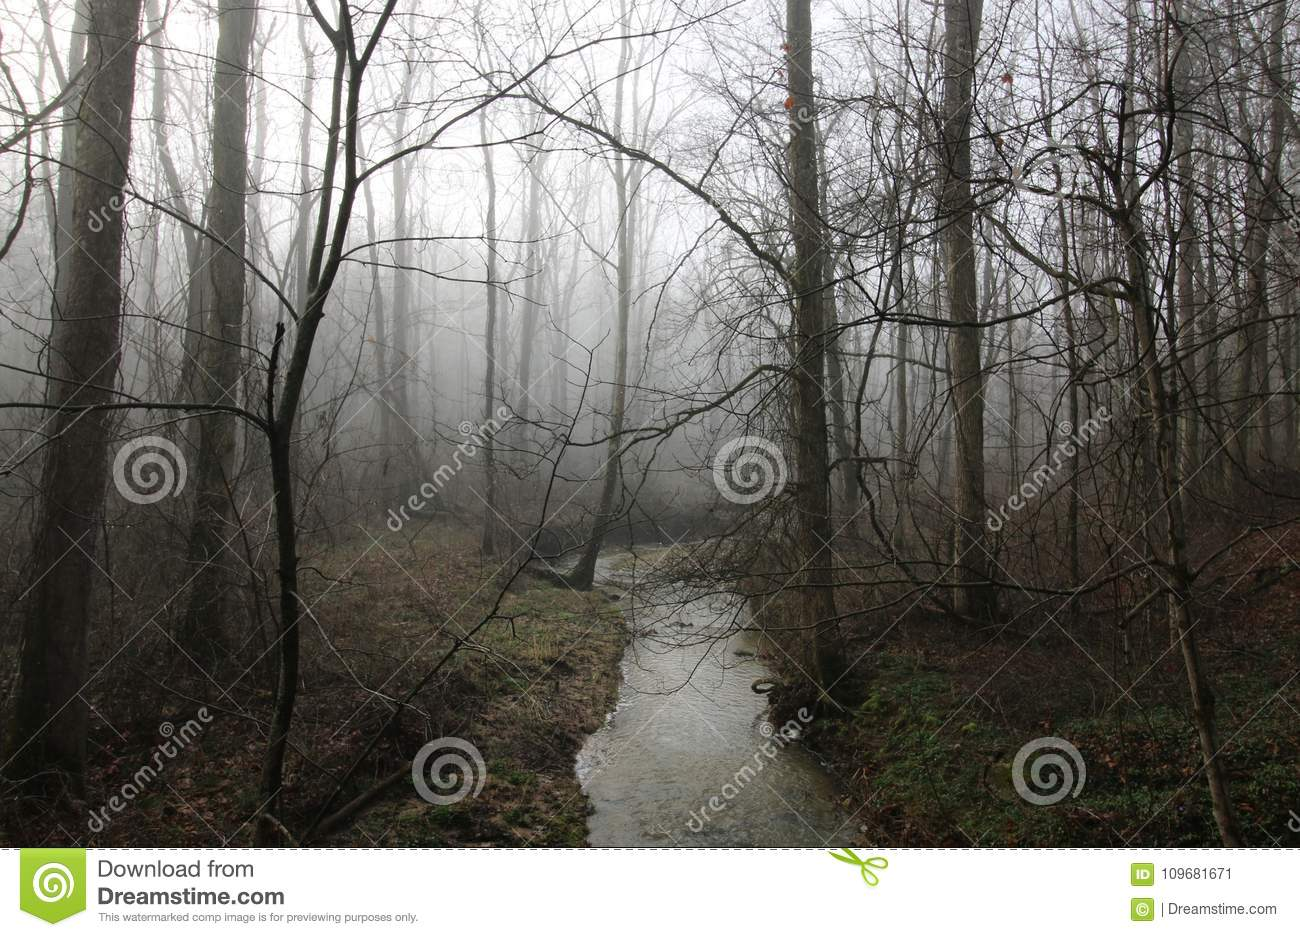 Stream On A Foggy Day In The Forest Stock Image - Image of foggy